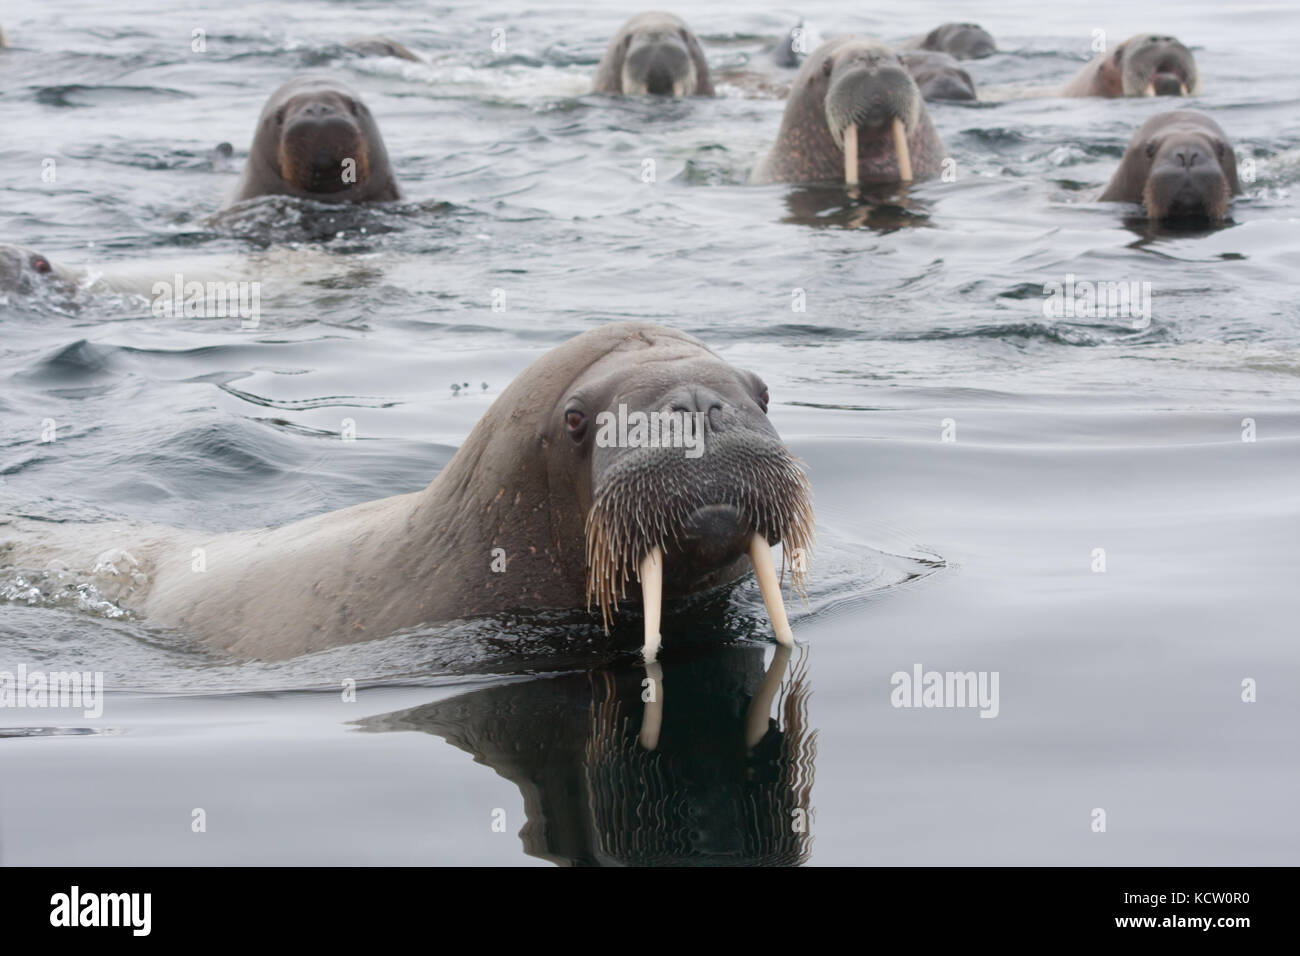 Group of Walrus (Odobenus rosmarus) swimming Stock Photo